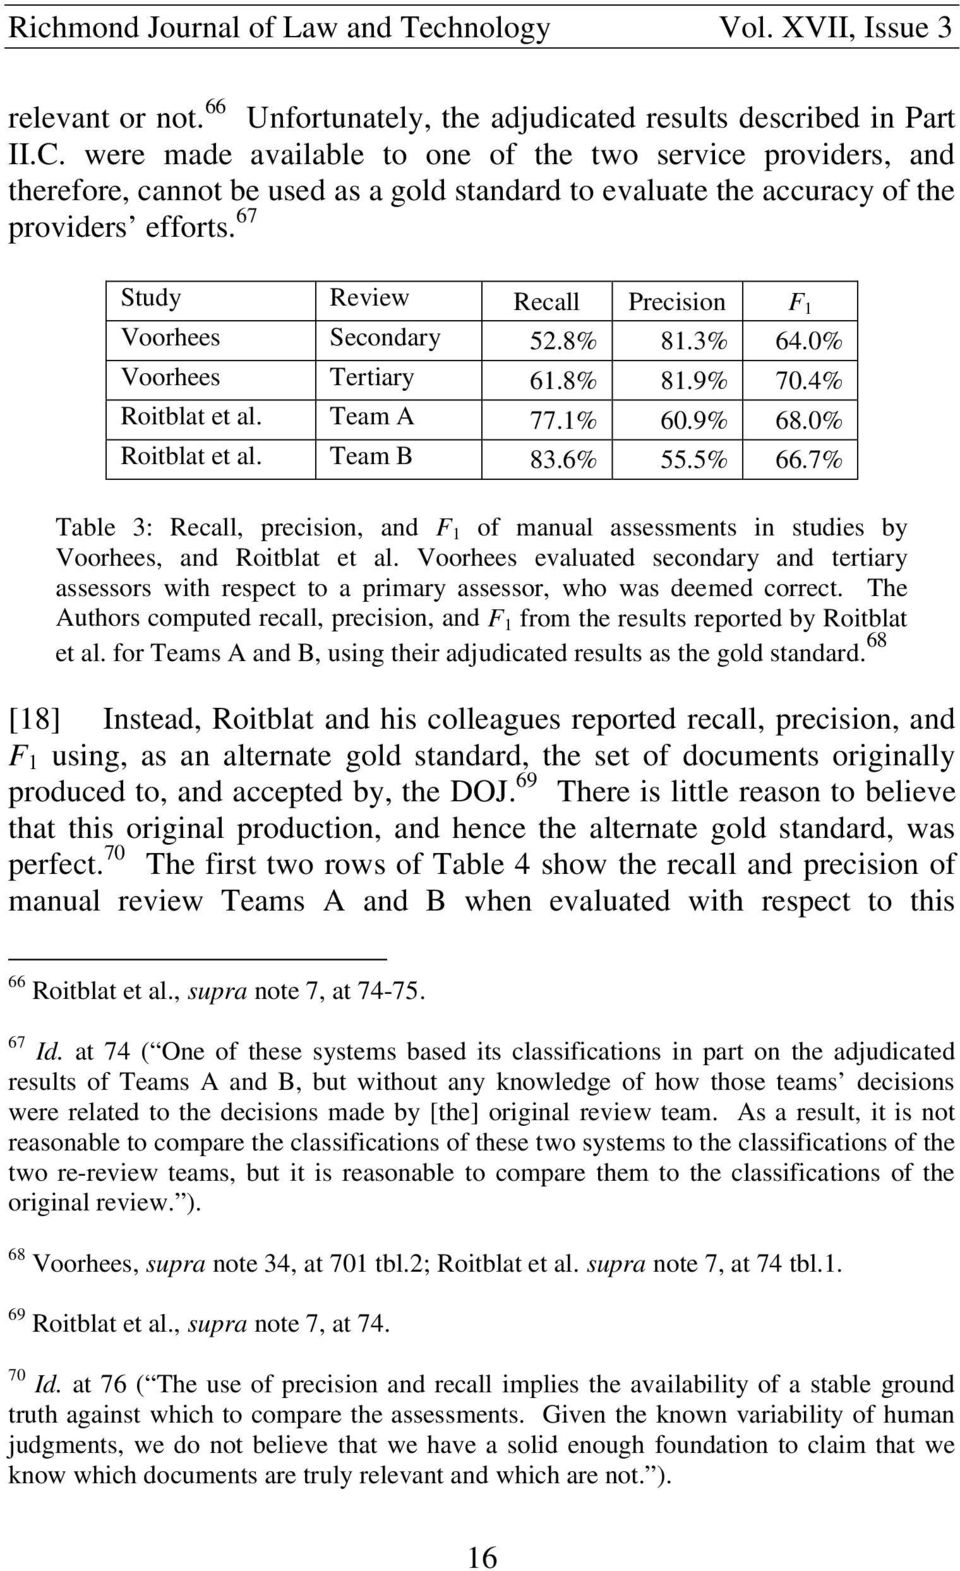 67 Study Review Recall Precision F 1 Voorhees Secondary 52.8% 81.3% 64.0% Voorhees Tertiary 61.8% 81.9% 70.4% Roitblat et al. Team A 77.1% 60.9% 68.0% Roitblat et al. Team B 83.6% 55.5% 66.